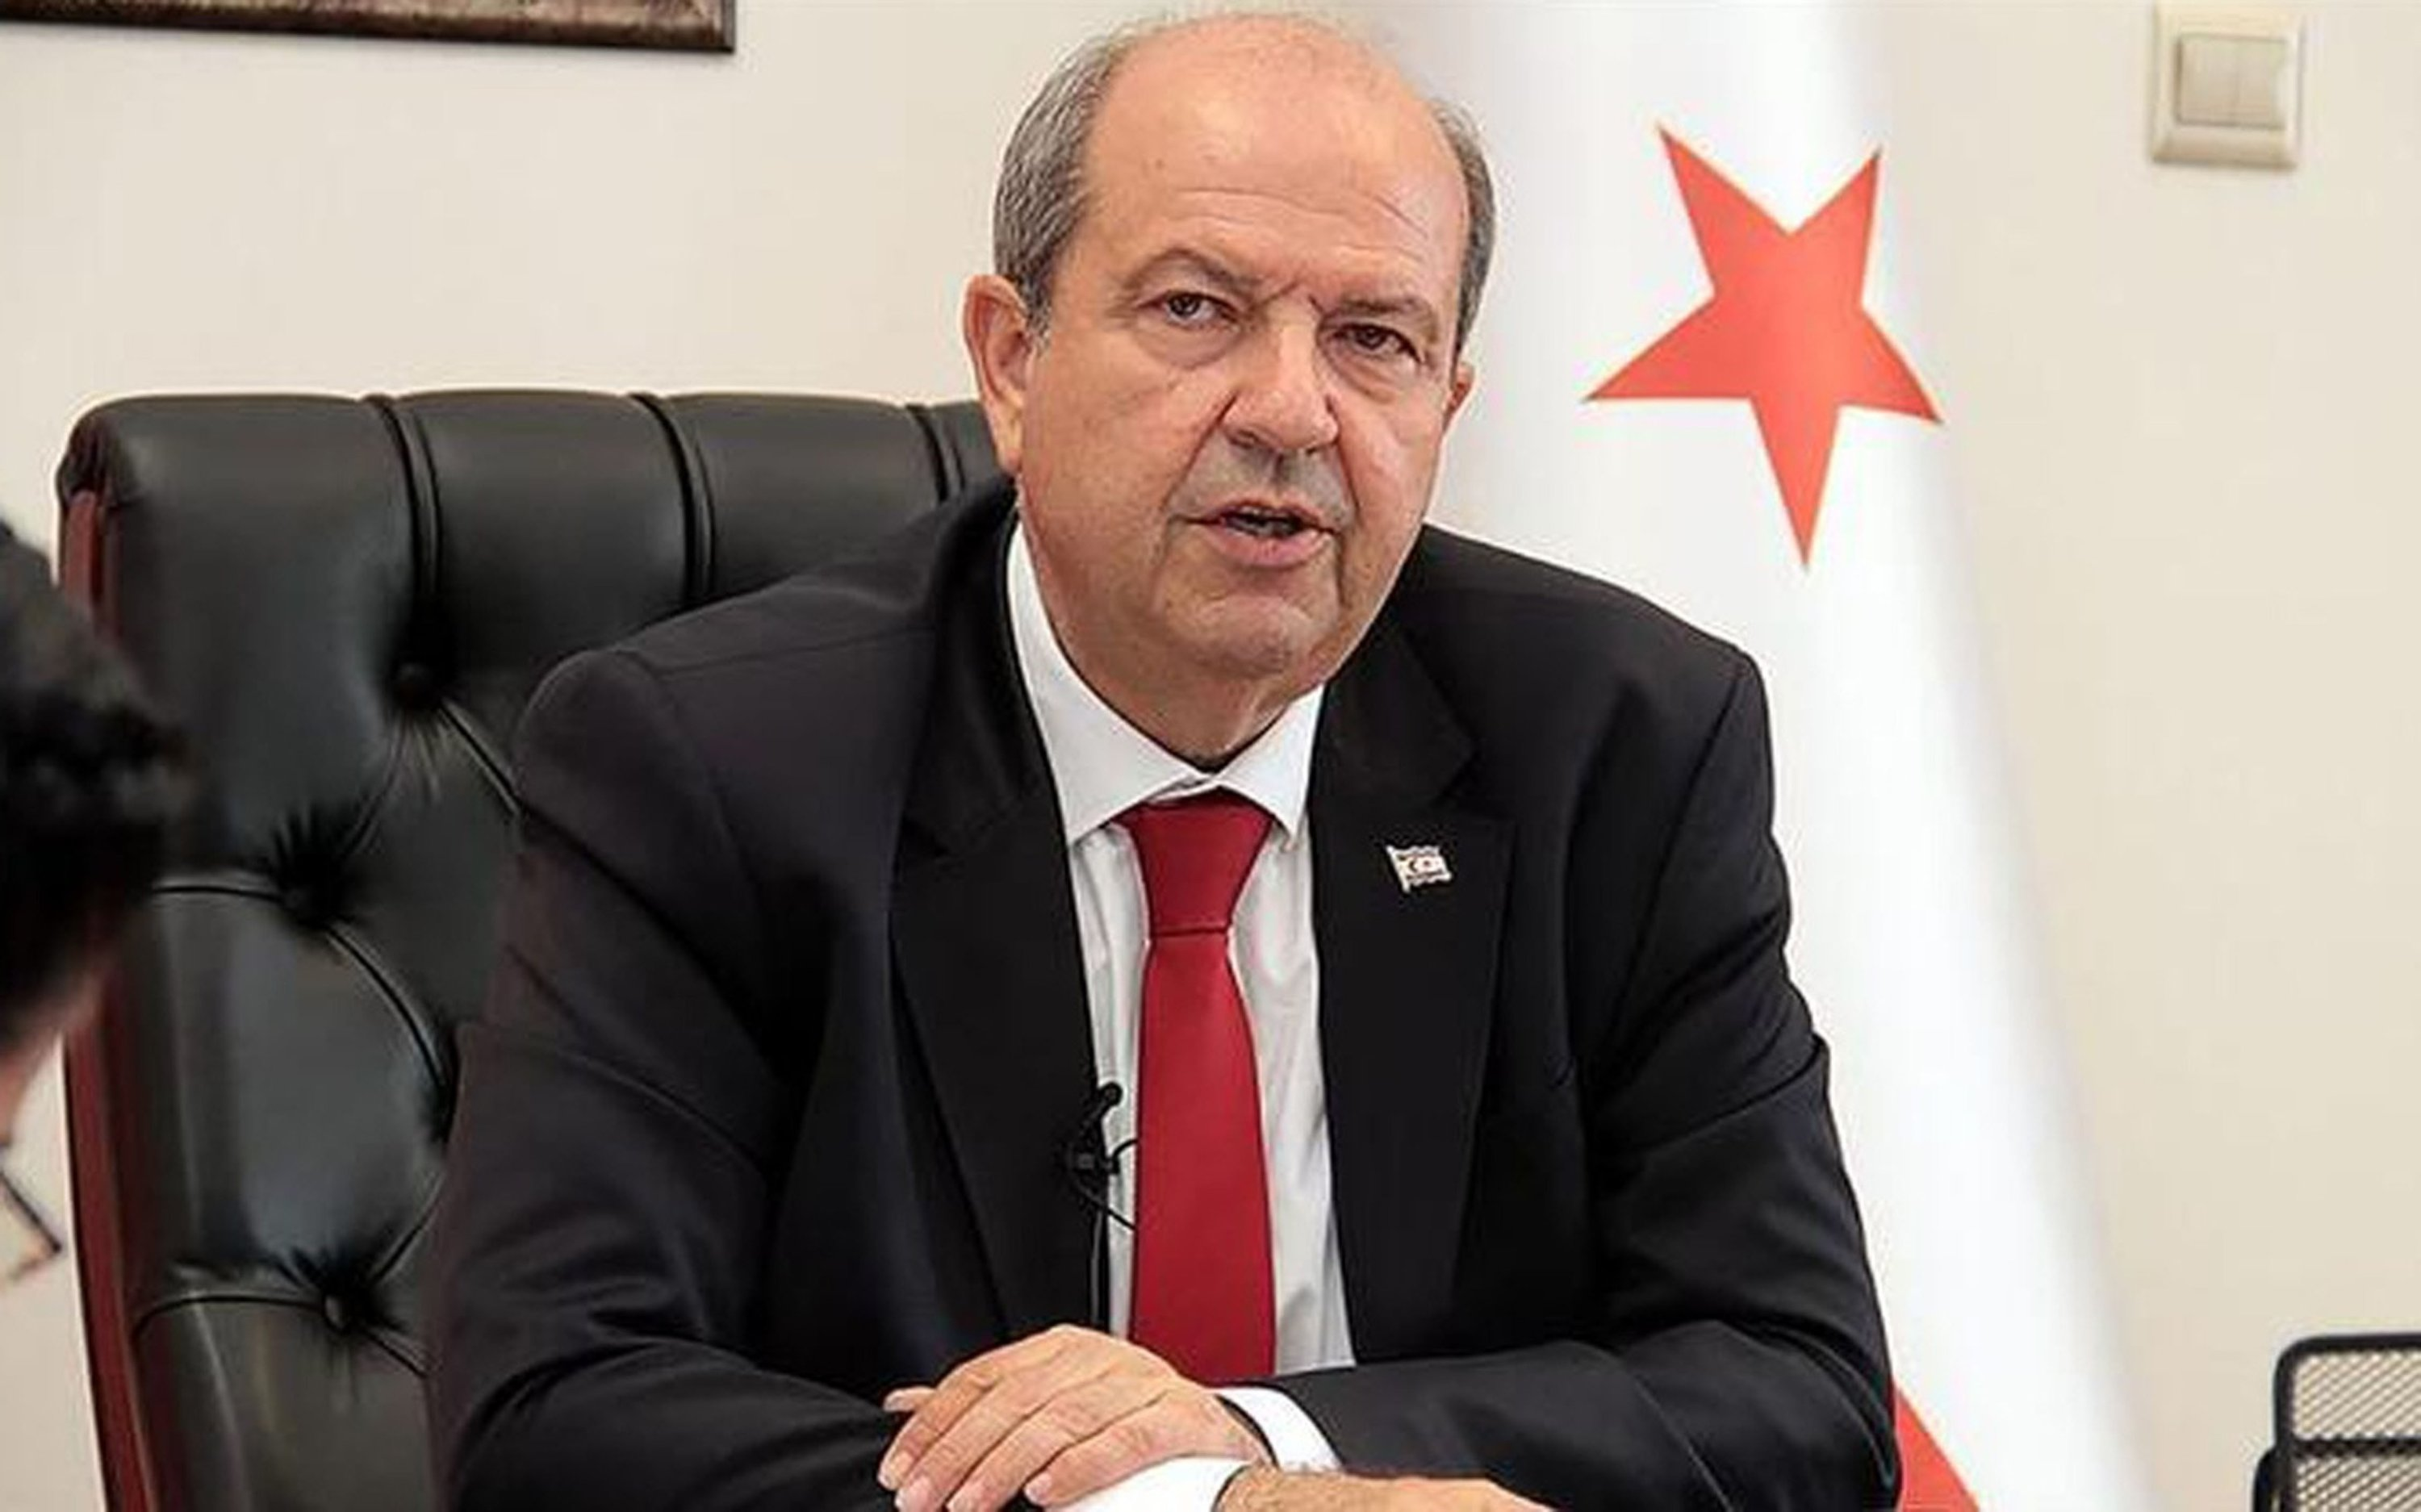 No one has right to put Turkish Cypriots at risk by calling for federal  solution, TRNC PM Tatar says | Daily Sabah